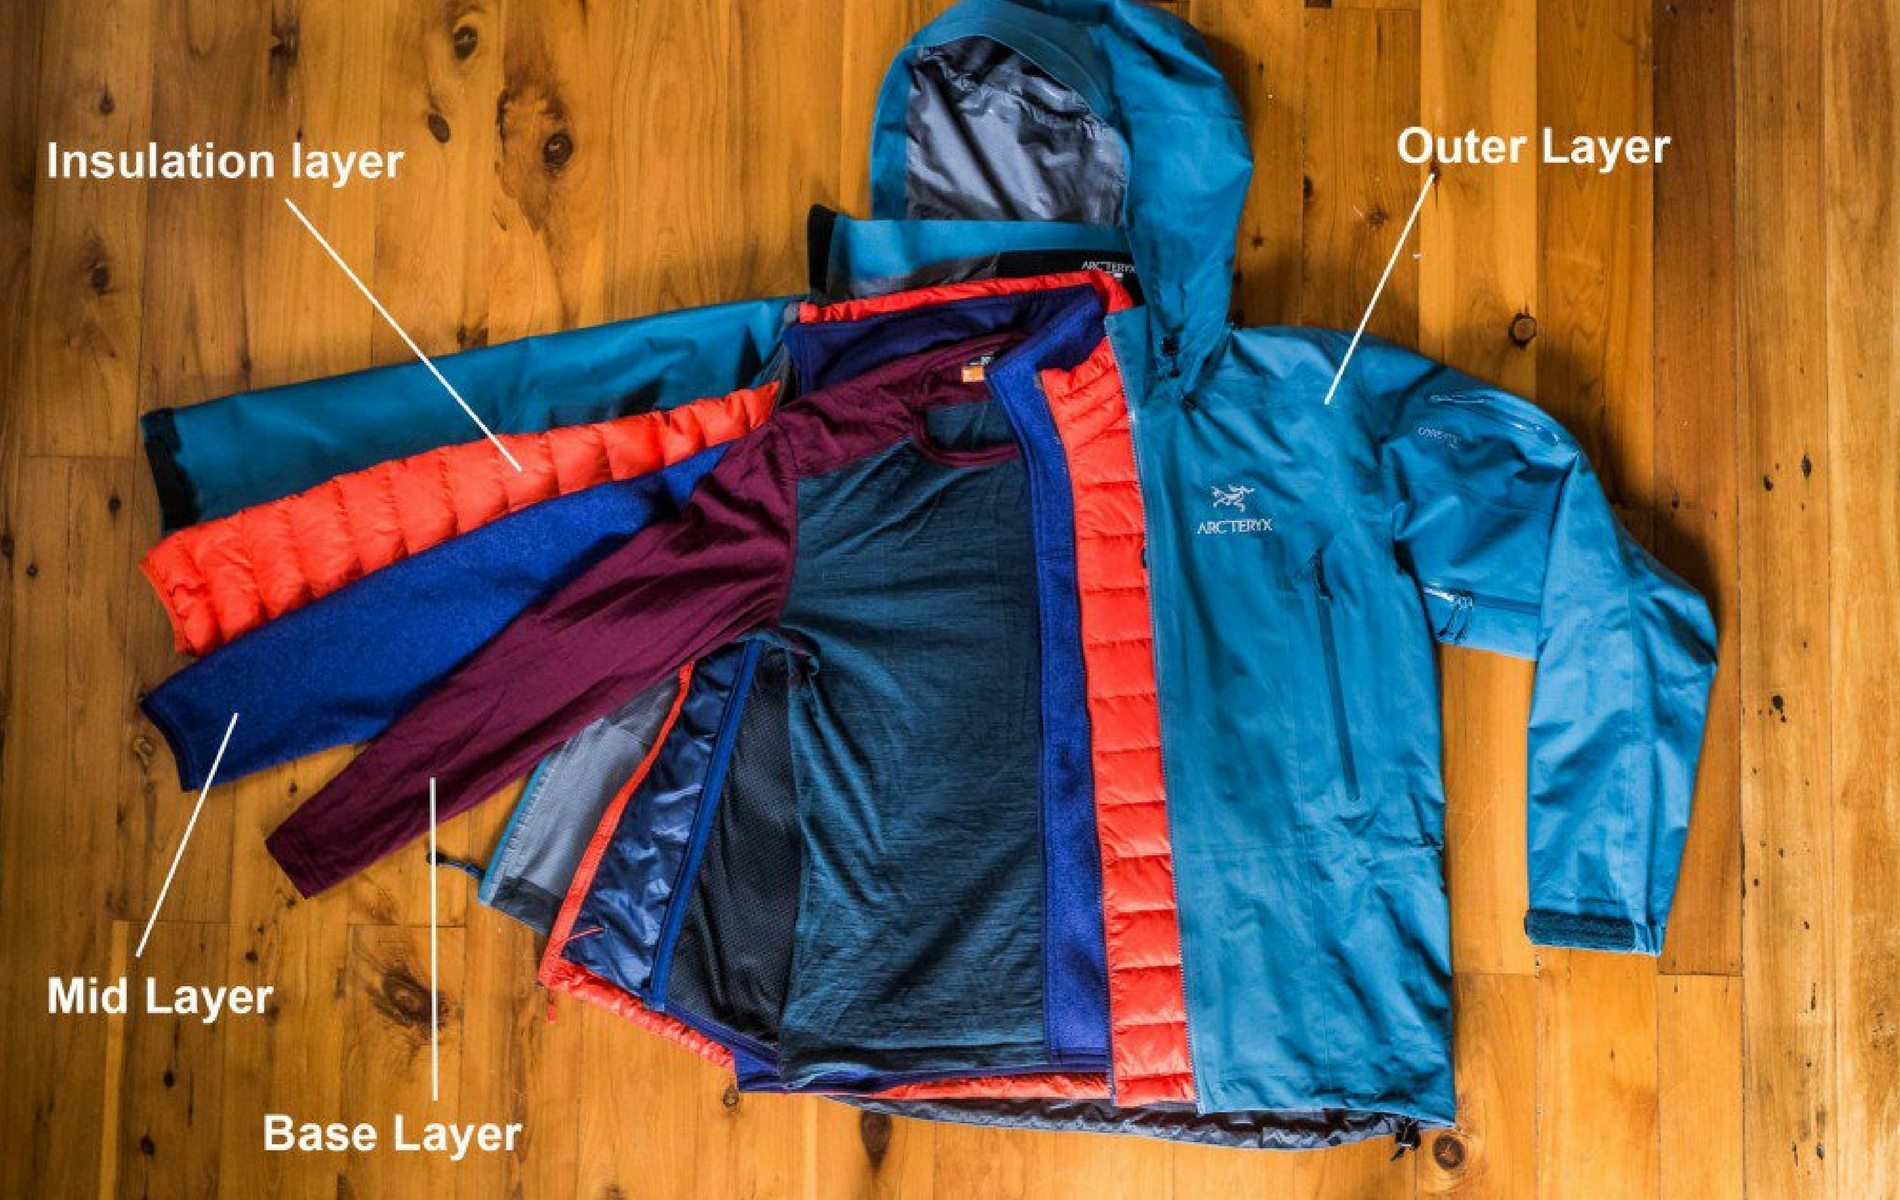 Layering Ultralight Clothing for Pilgrimage Backpacking